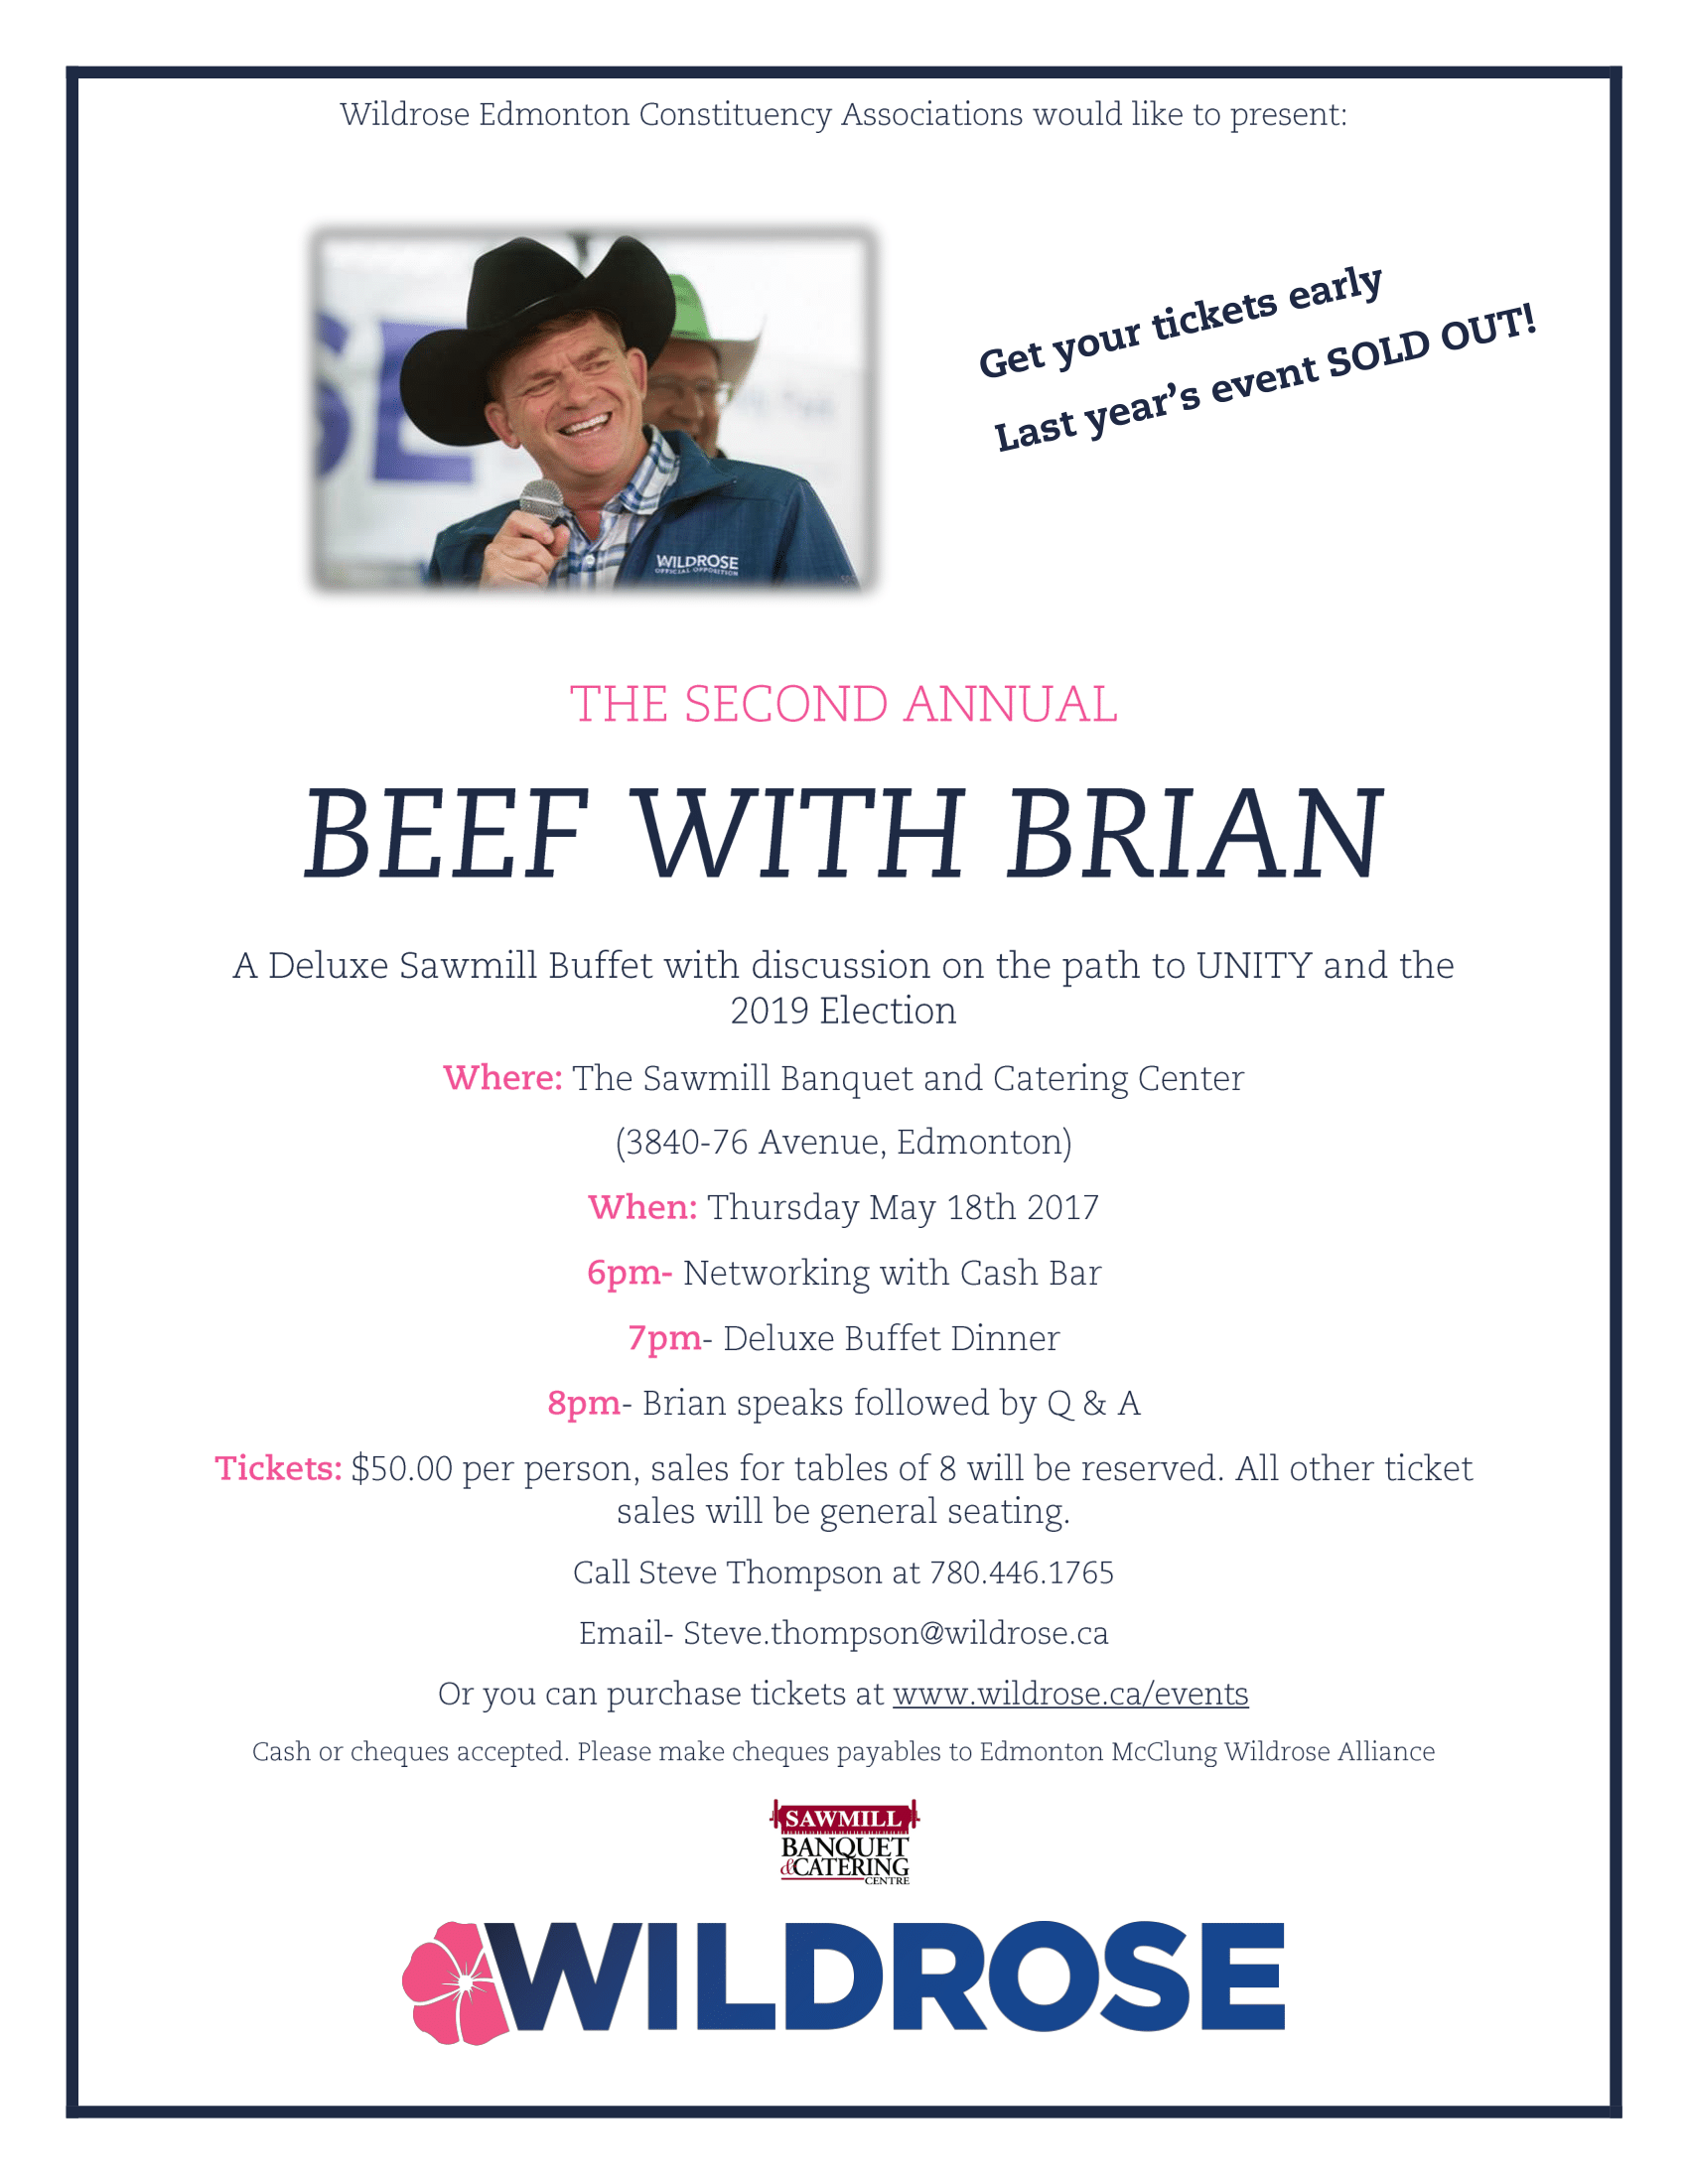 Edmonton-McClung_Beef_with_Brian_31-Mar-17-1.png